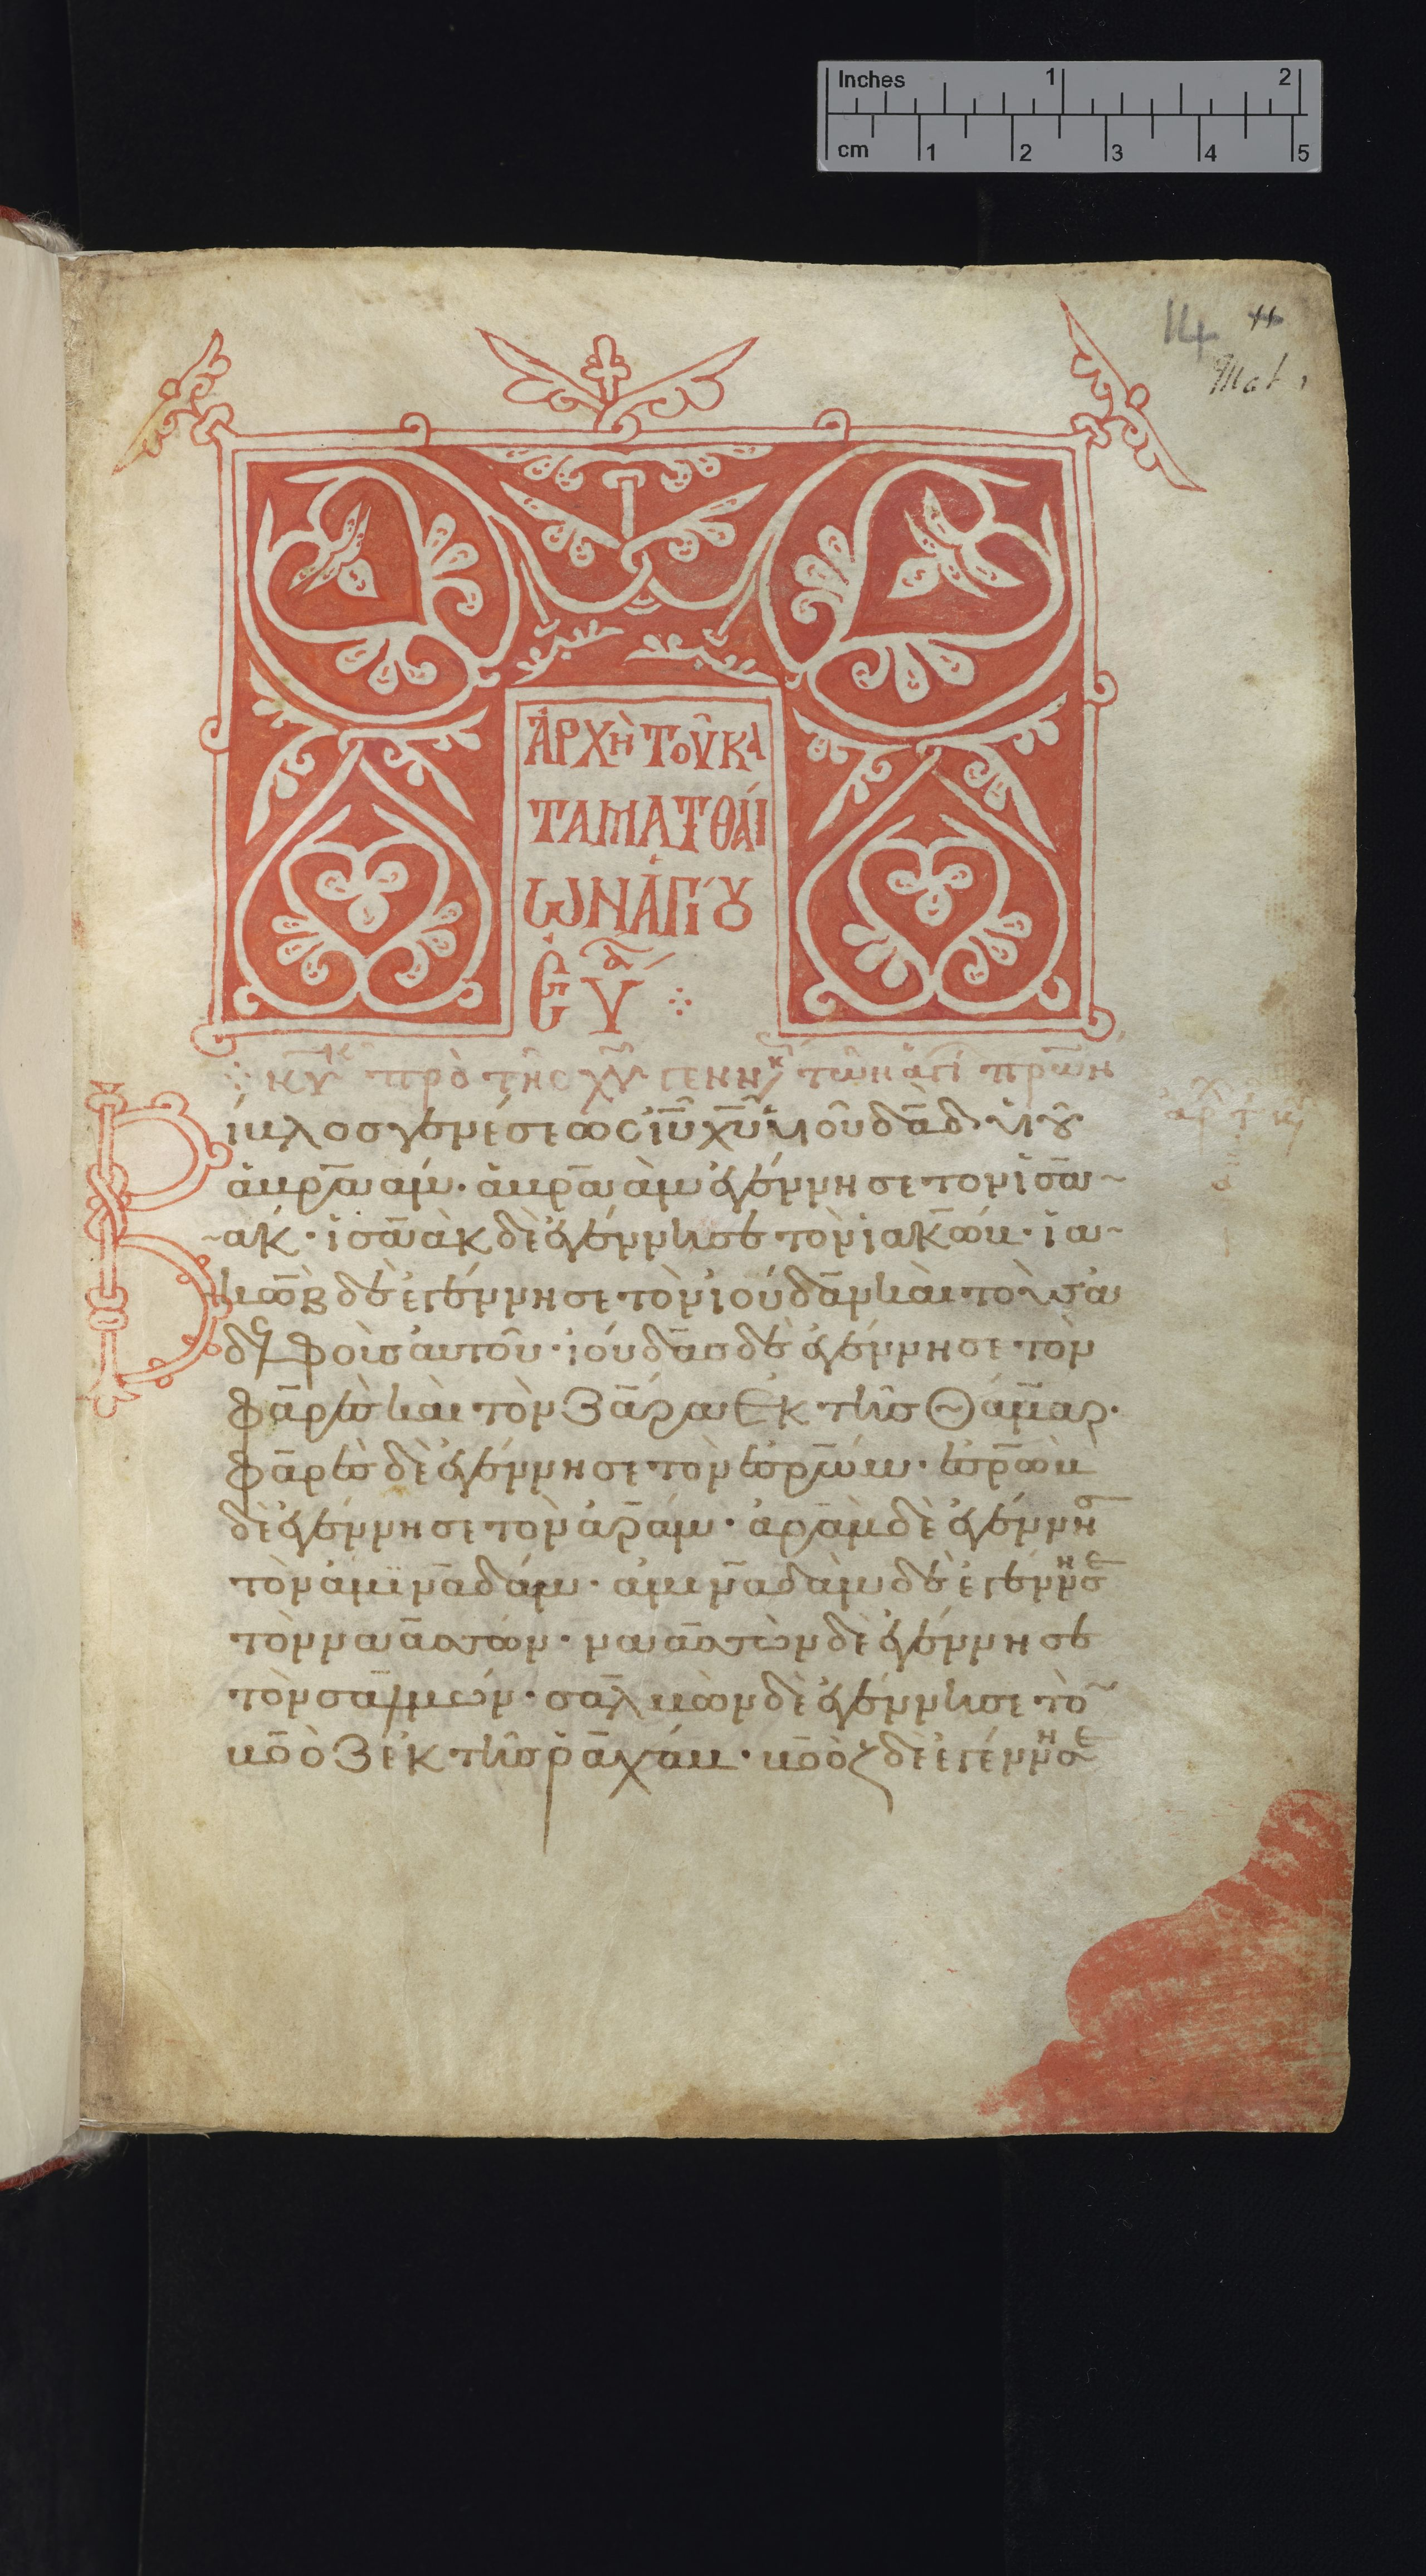 A Greek New Testament manuscript dated to 1297 from the collection of Cambridge University Library.